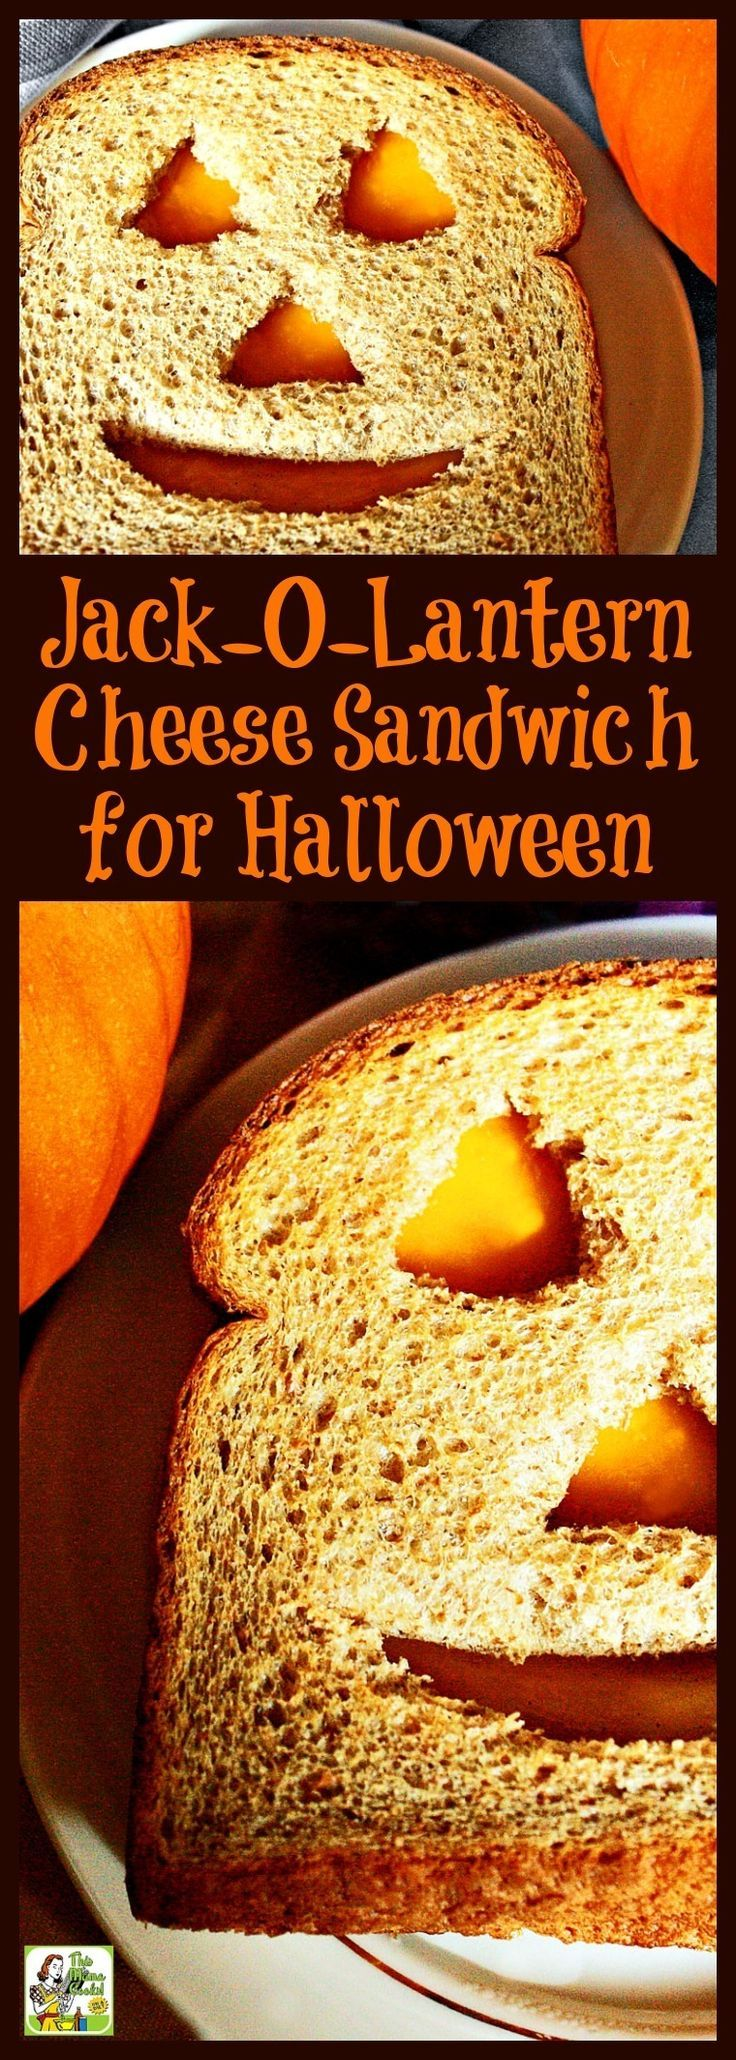 This Jack-O-Lantern Cheese Sandwich for Halloween recipe is a healthy cheese sandwich for Halloween kids parties. So easy to make that the kids can do it themselves! Click to get this fun and healthy Halloween recipe.